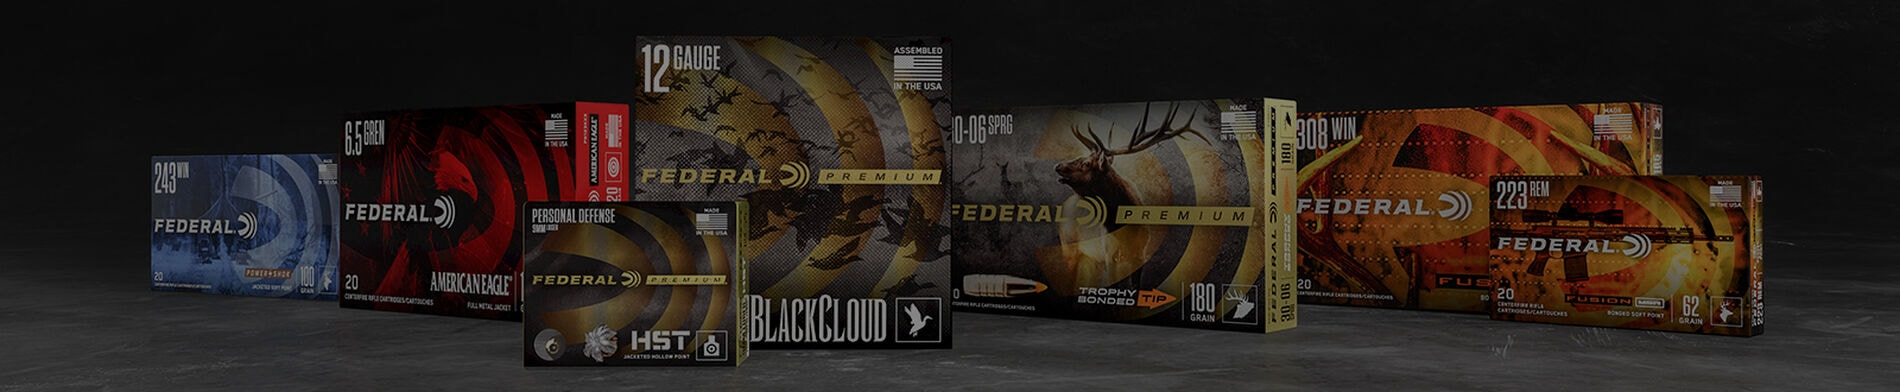 Federal Ammo Banner